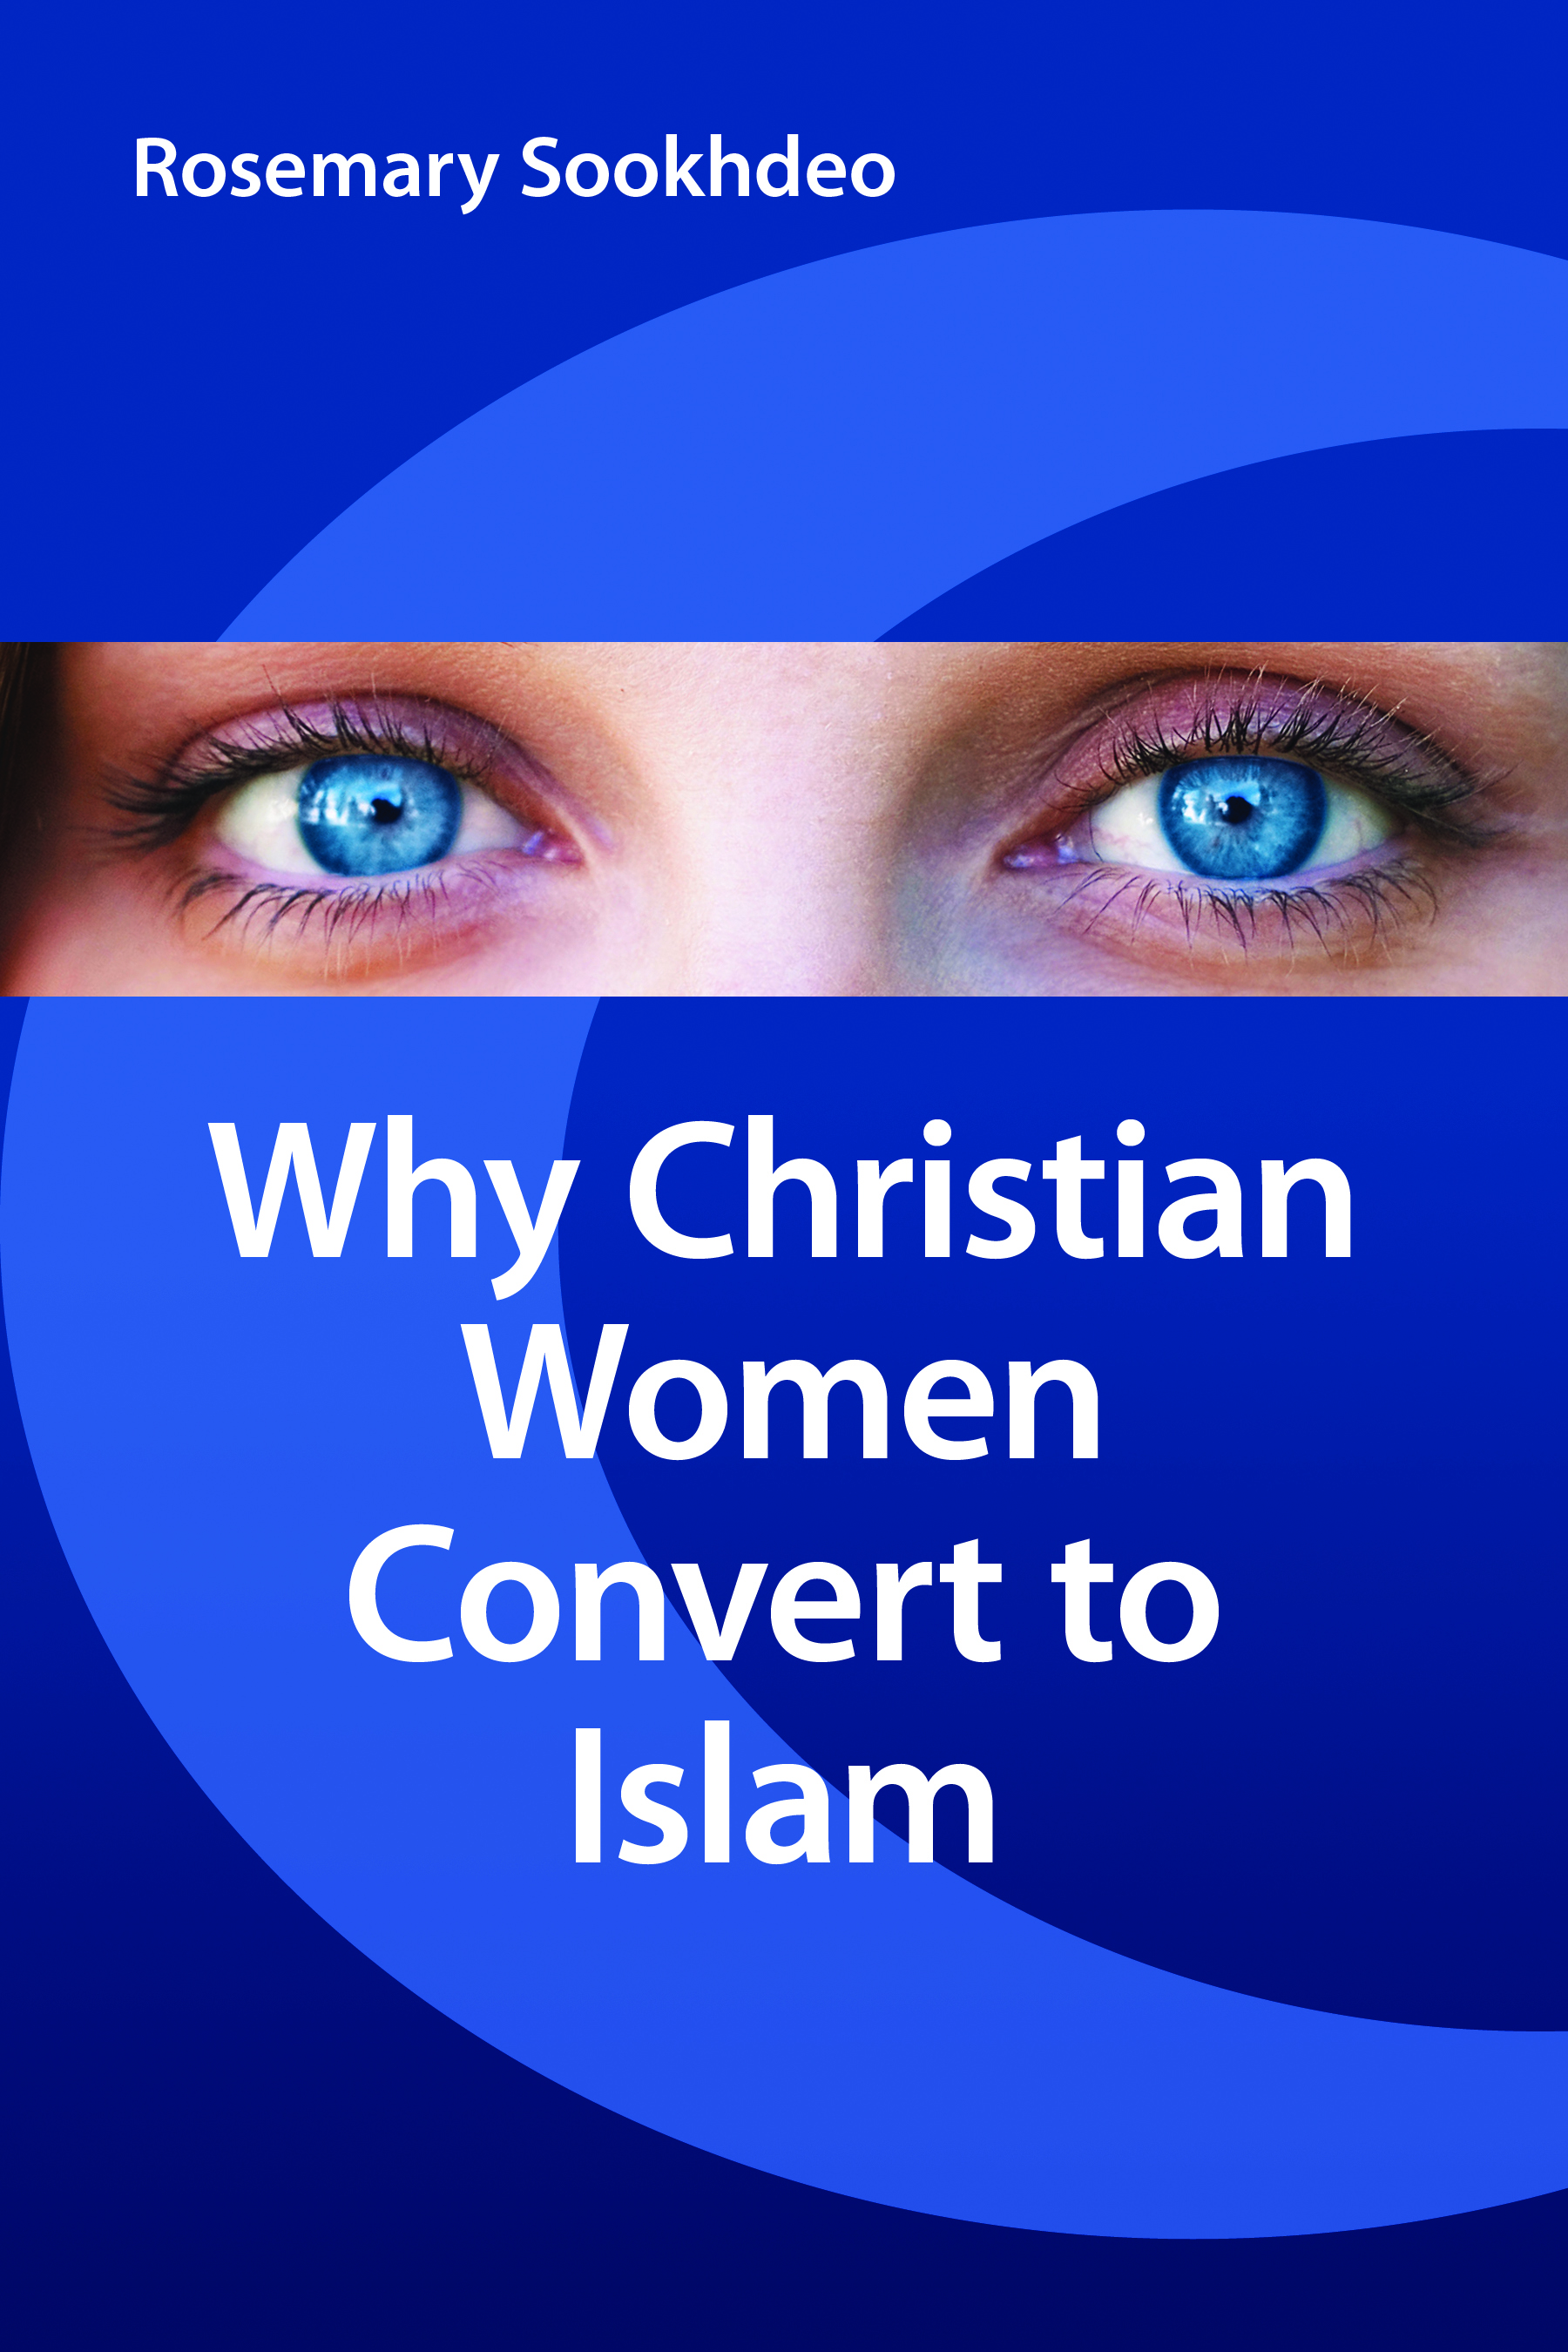 Why Christian Women Convert to Islam